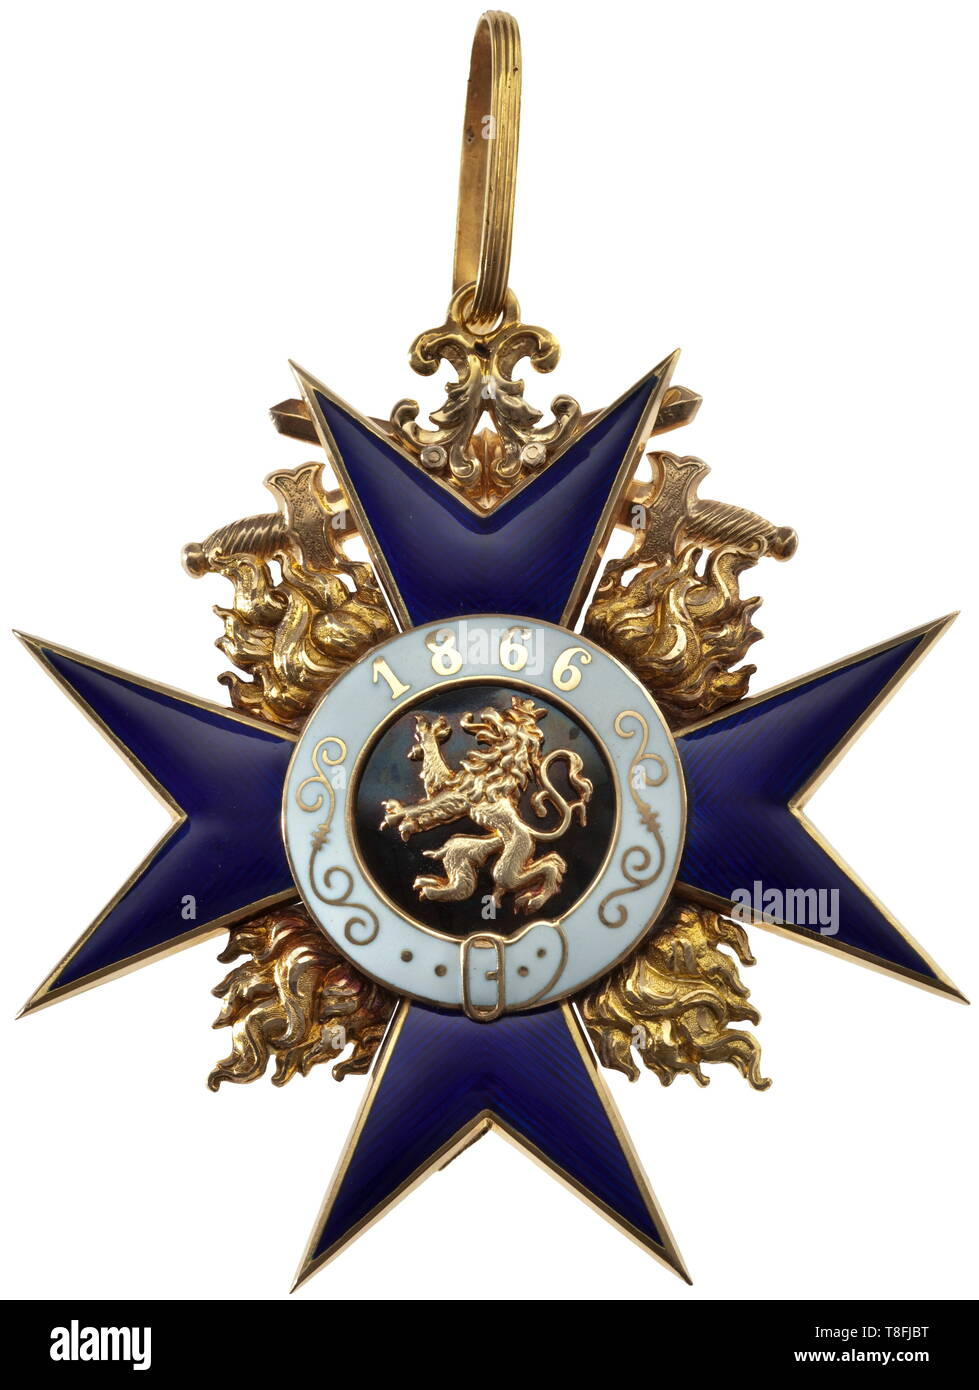 A Grand Cross with Swords of the Bavarian Military Merit Order Cross of the Order in Gold from the pre-1917 period of the First World War. The award, produced by the Hemmerle Brothers in Munich, is marked 'GEB.H. 750' in the lower cross arm. Between the hollow wrought, blue enameled cross arms the flames are individually inset and finely re-engraved in order to amplify their fire. The three-section medallion is white and black enameled. The swords, likewise hollow hand-wrought and completed on both sides, are affixed at their cen 20th century, Additional-Rights-Clearance-Info-Not-Available - Stock Image